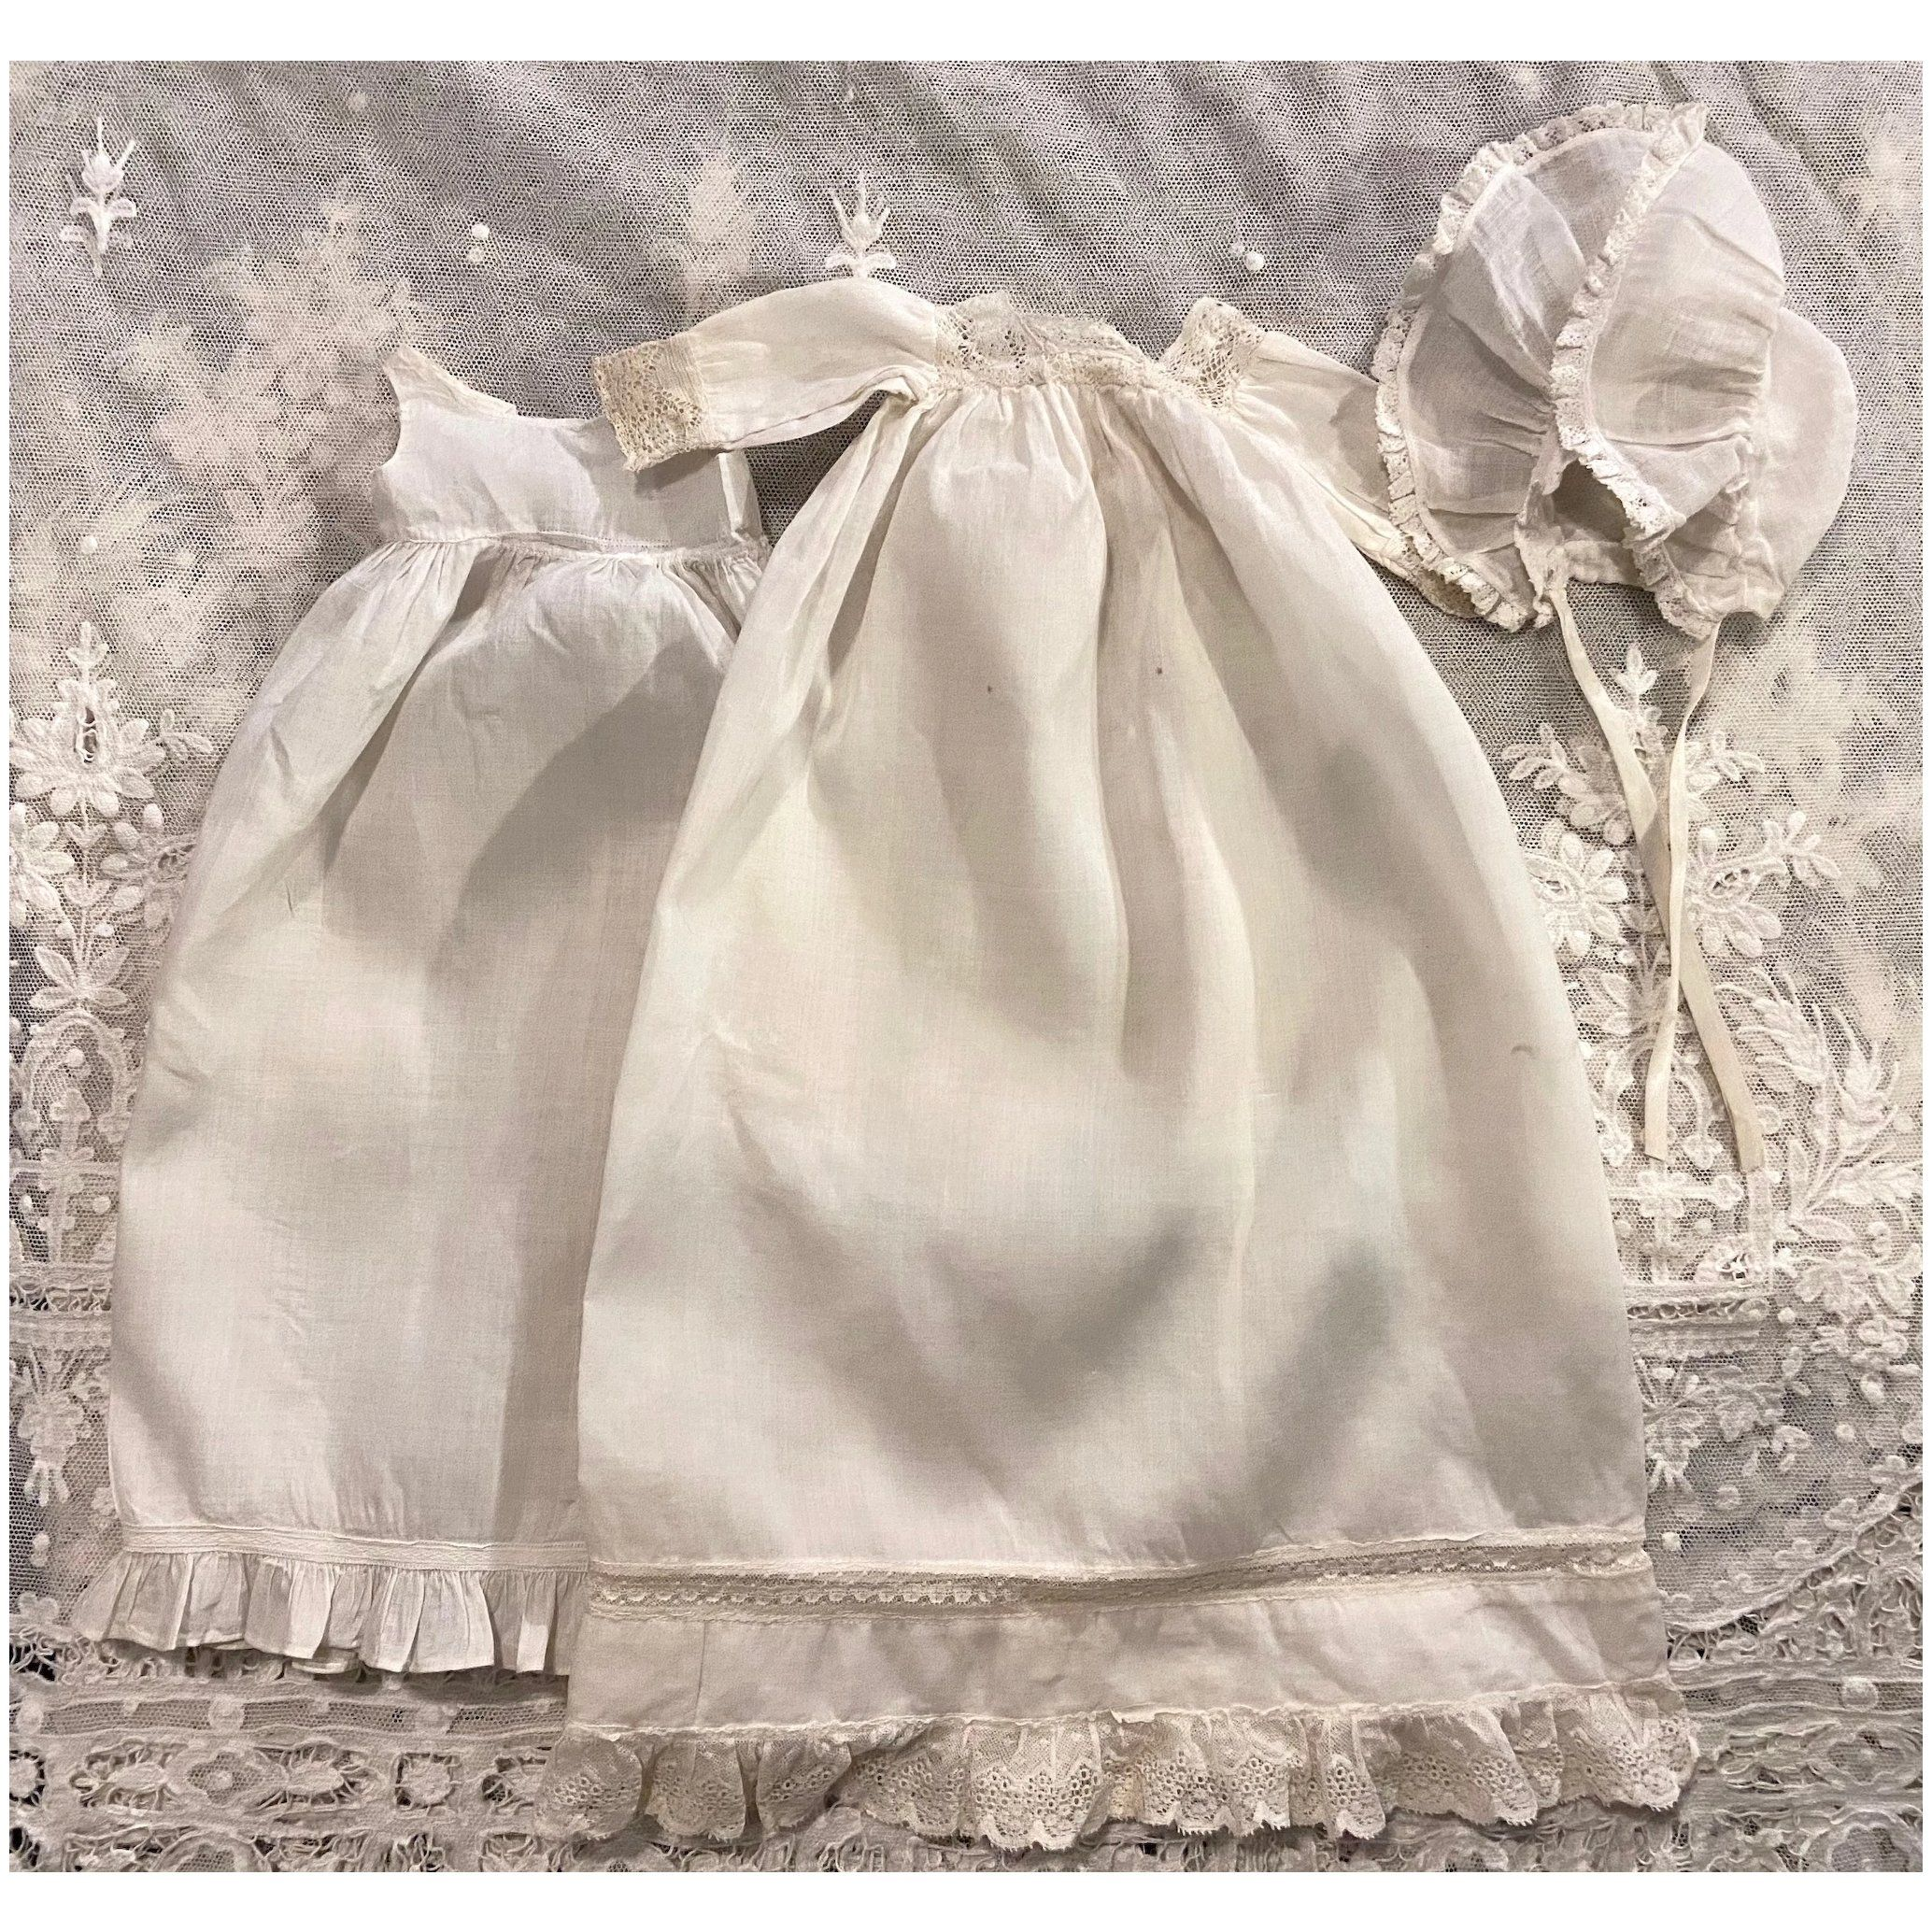 Authentic Antique Broderie Anglaise Dress with Beautiful